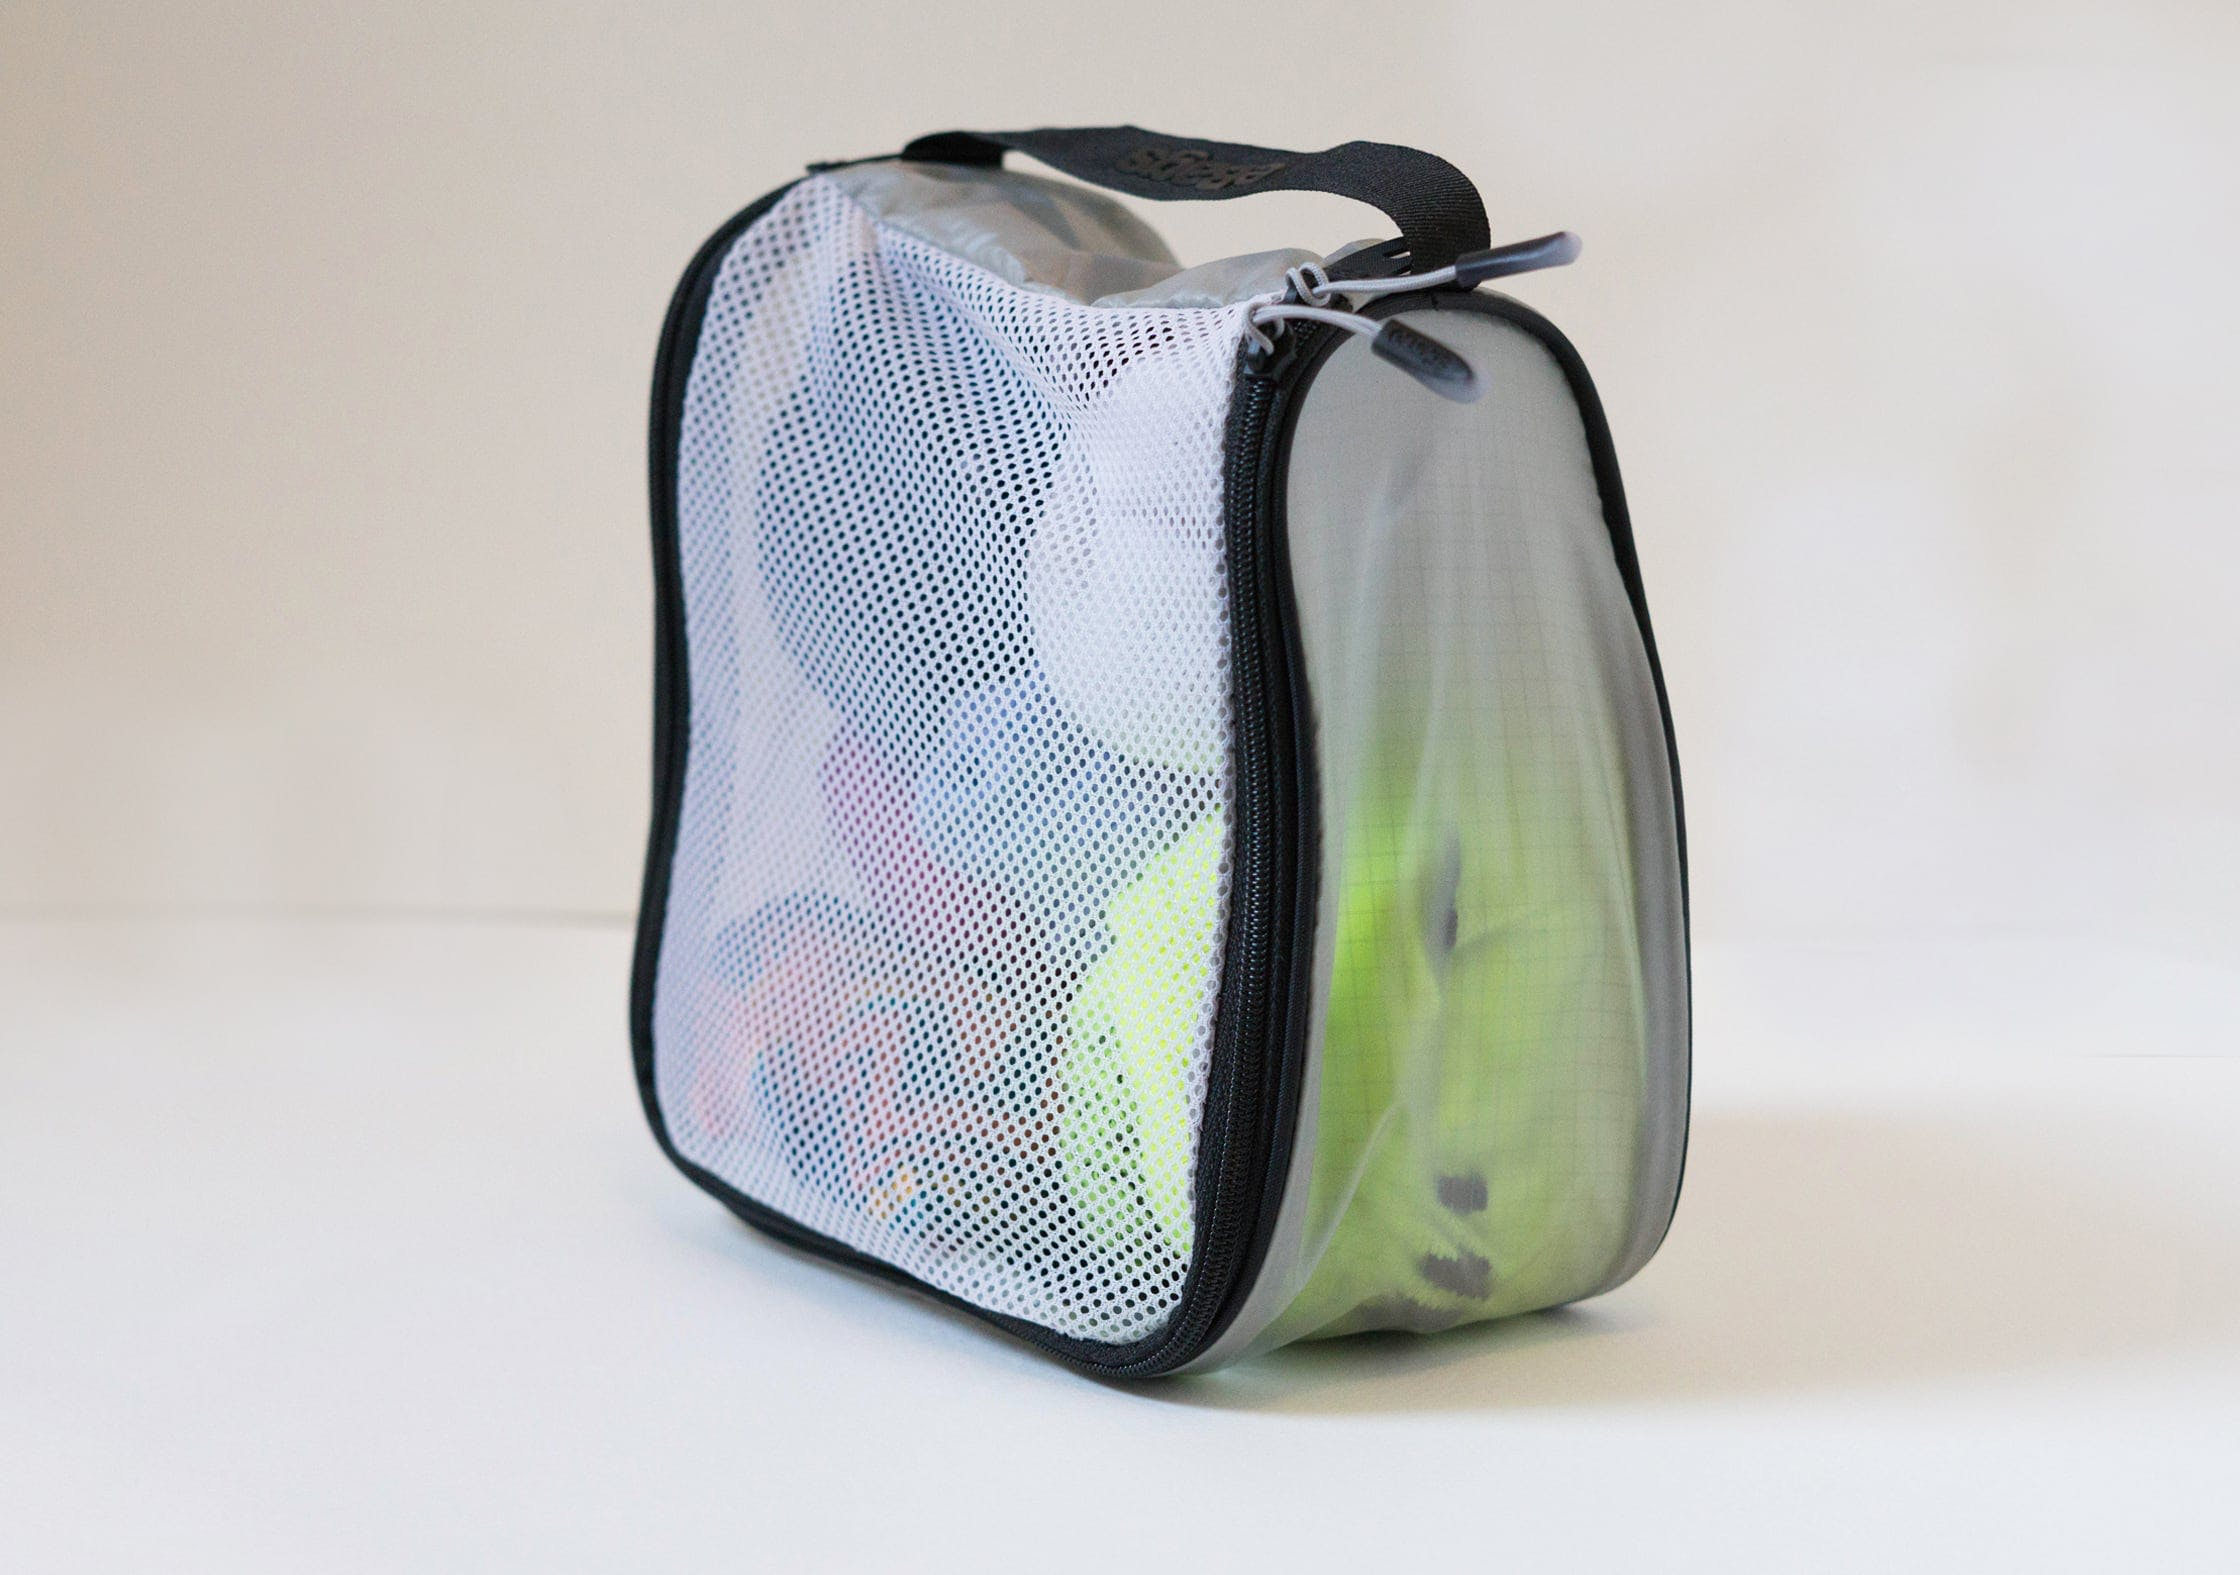 ebags ultralight packing cubes review